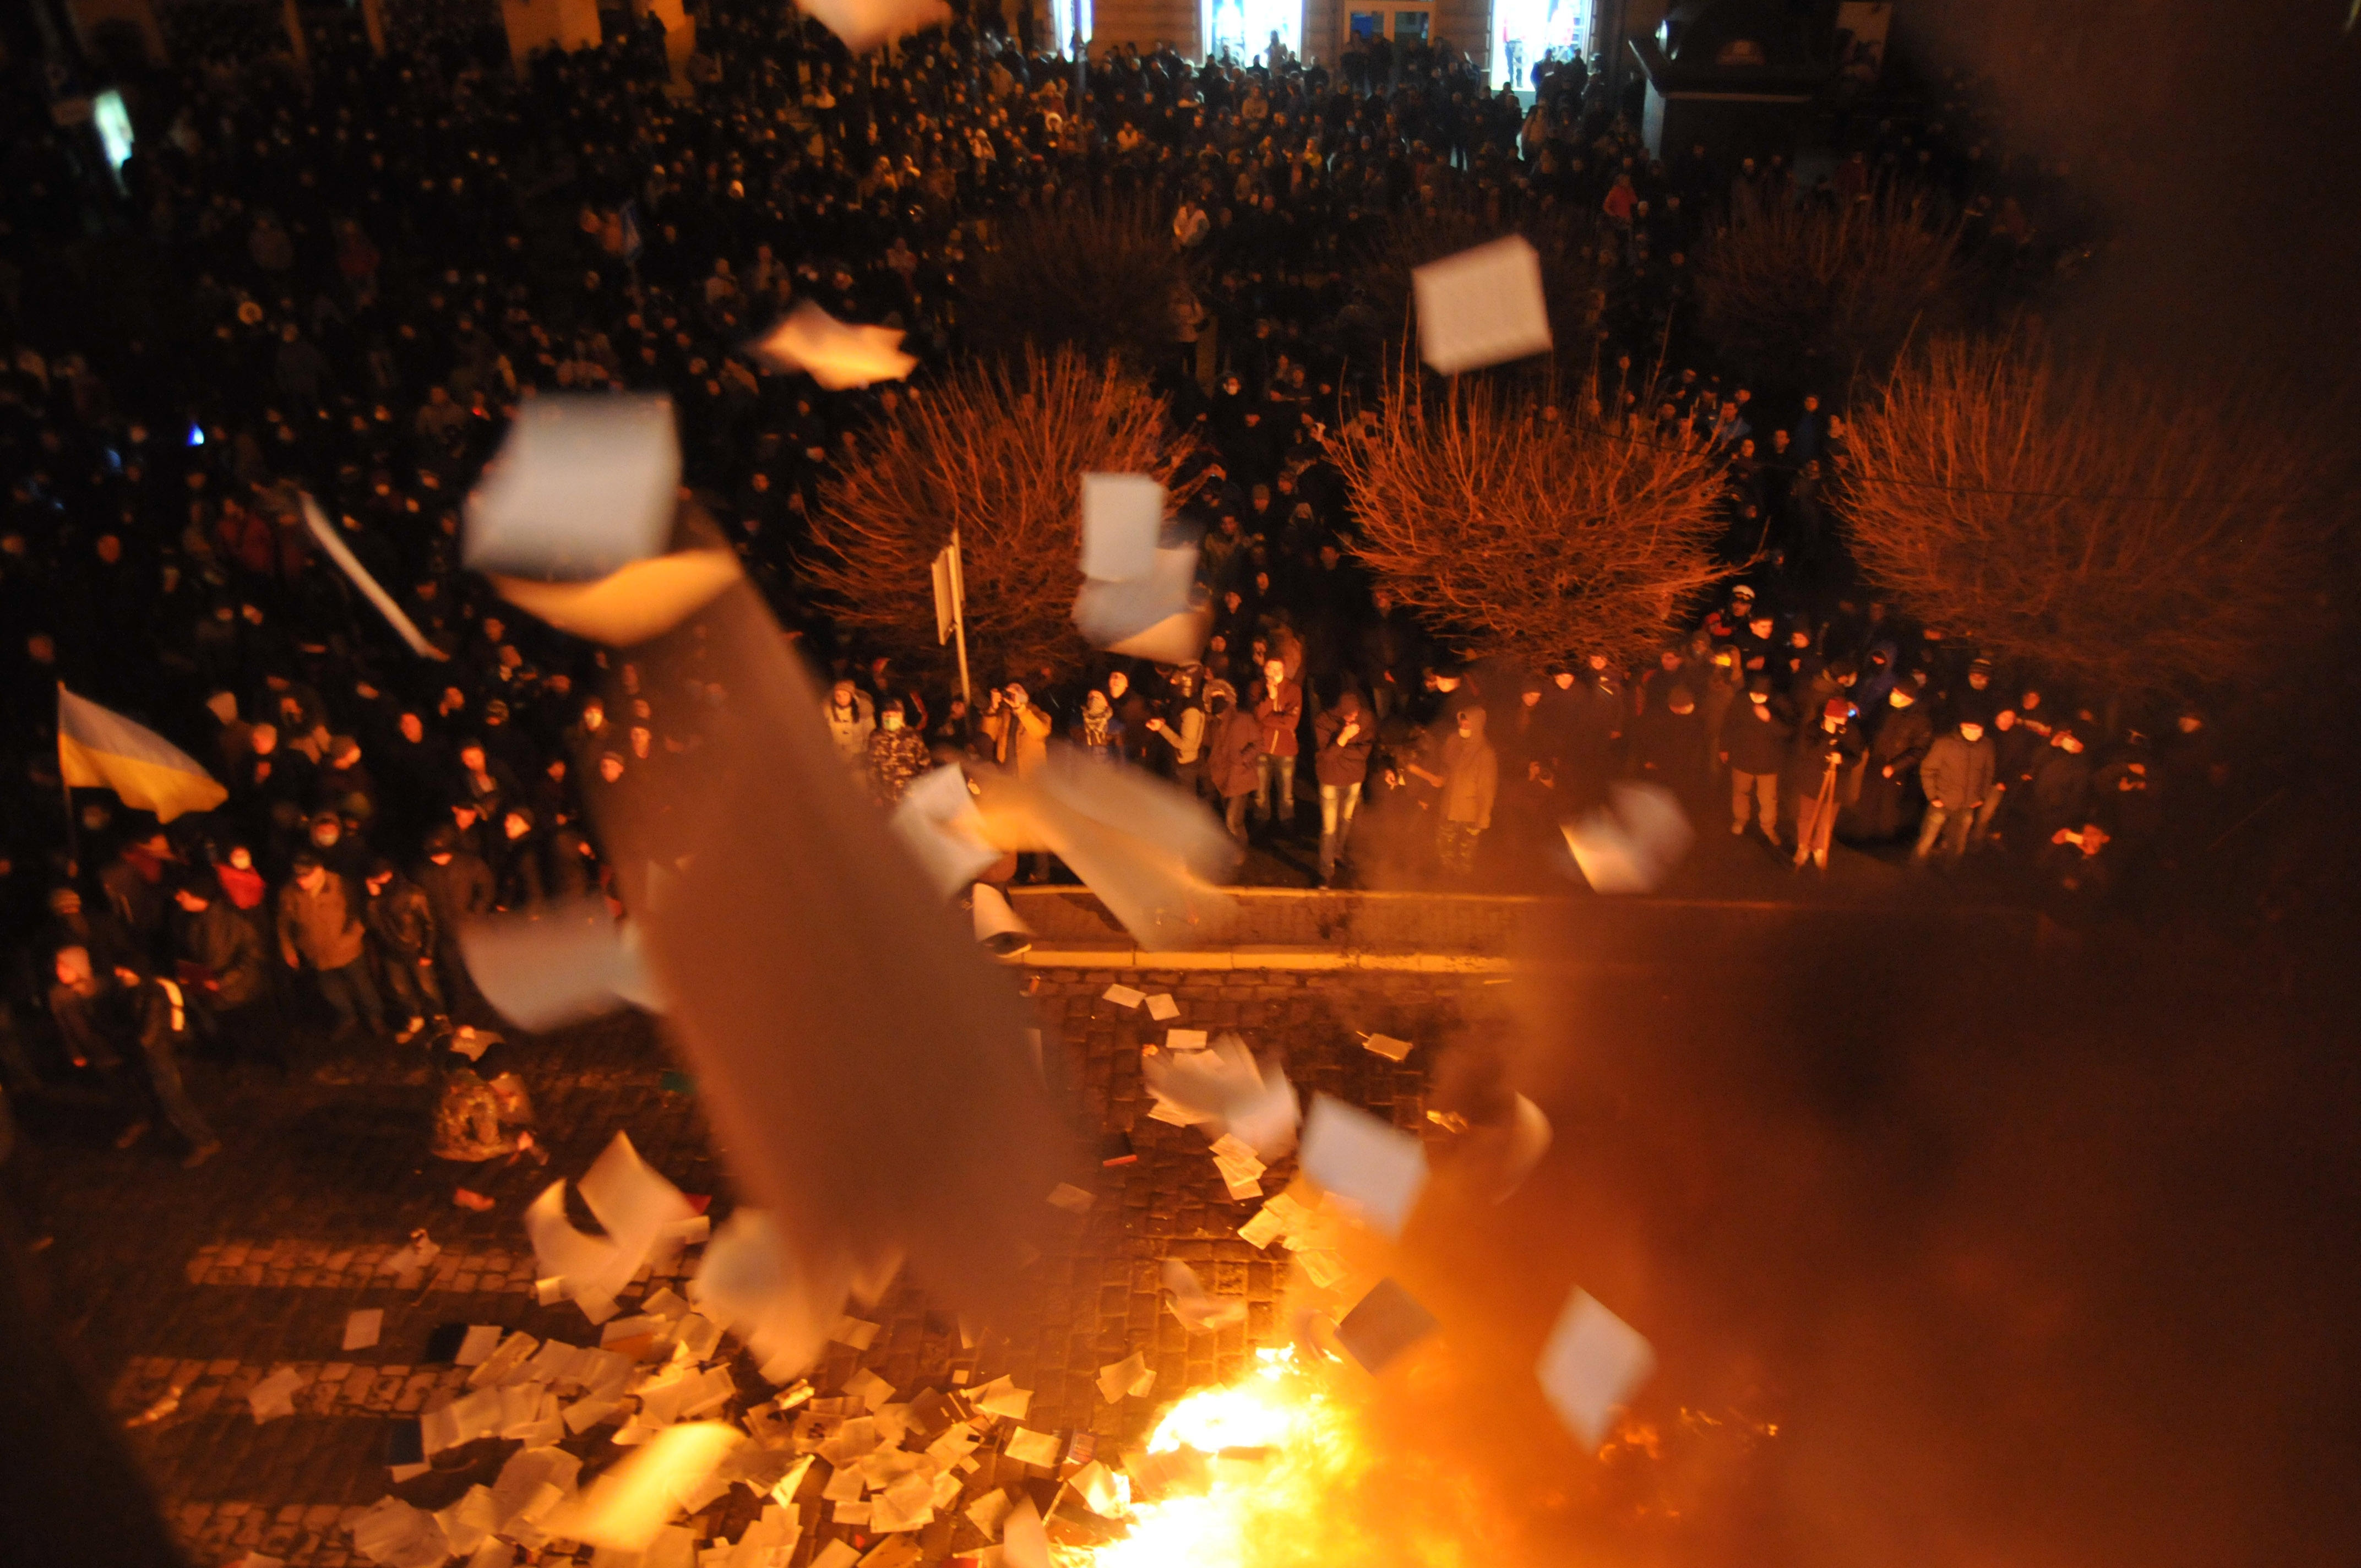 Ukrainian protesters throw out and burn papers from prosecutor's headquarters in Lviv, western Ukraine, early Wednesday, Feb. 19, 2014. The violence on Tuesday was the worst in nearly three months of anti-government protests that have paralyzed Ukraine's capital, Kiev, in a struggle over the identity of a nation divided in loyalties between Russia and the West, and the worst in the country's post-Soviet history.